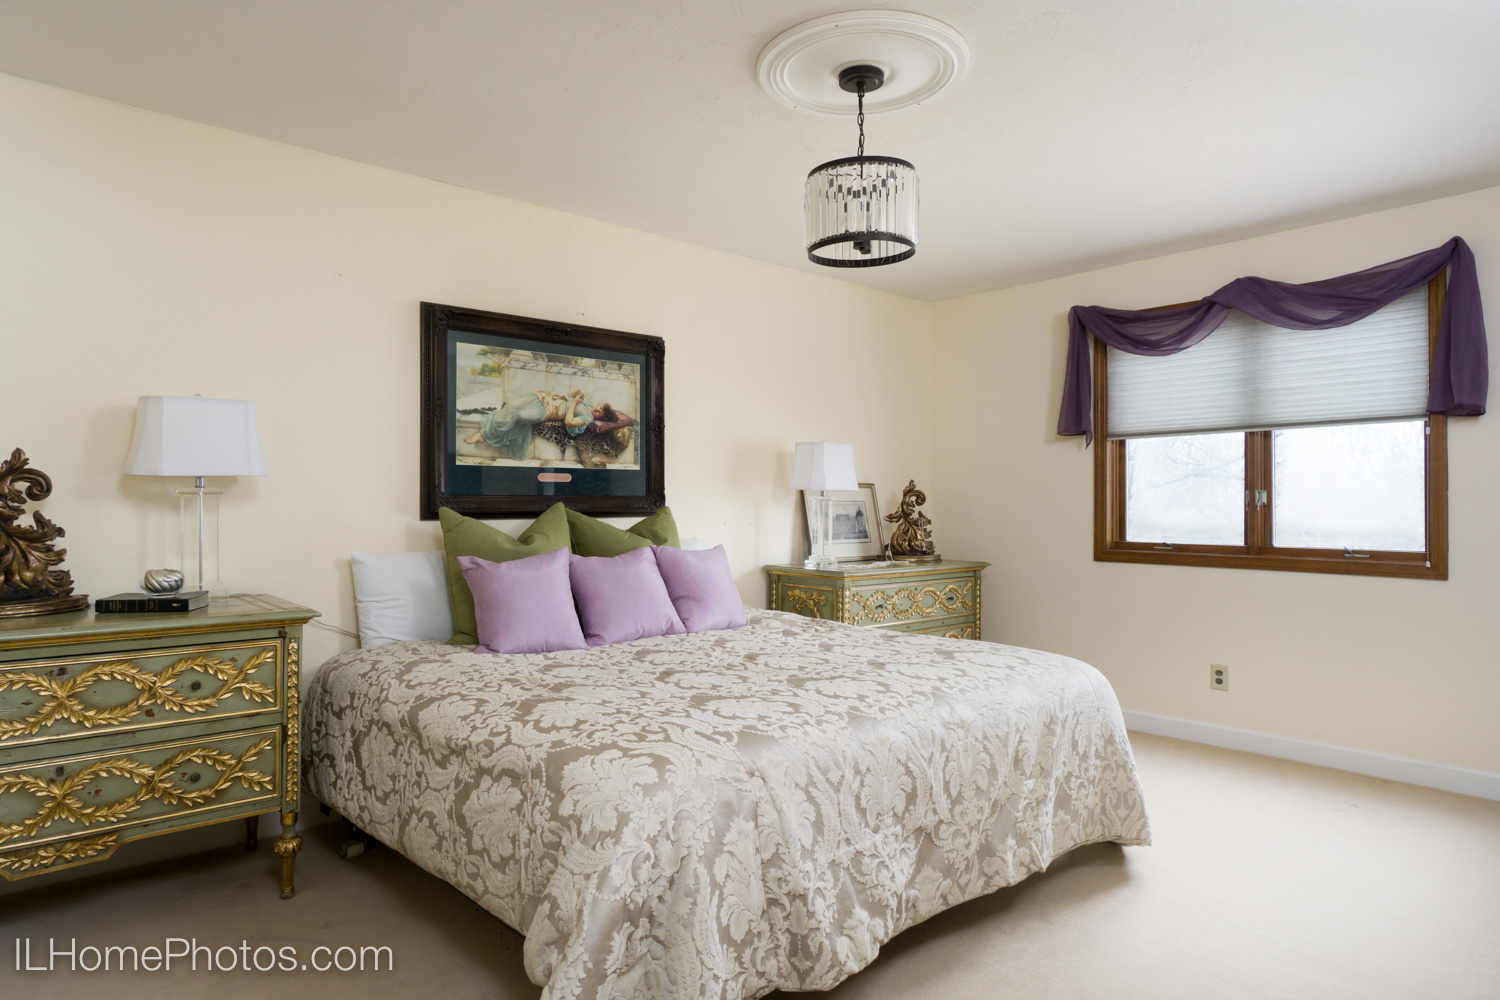 Interior master bedroom photograph for real estate in Dunlap, IL :: Illinois Home Photography by Michael Gowin, Lincoln, IL